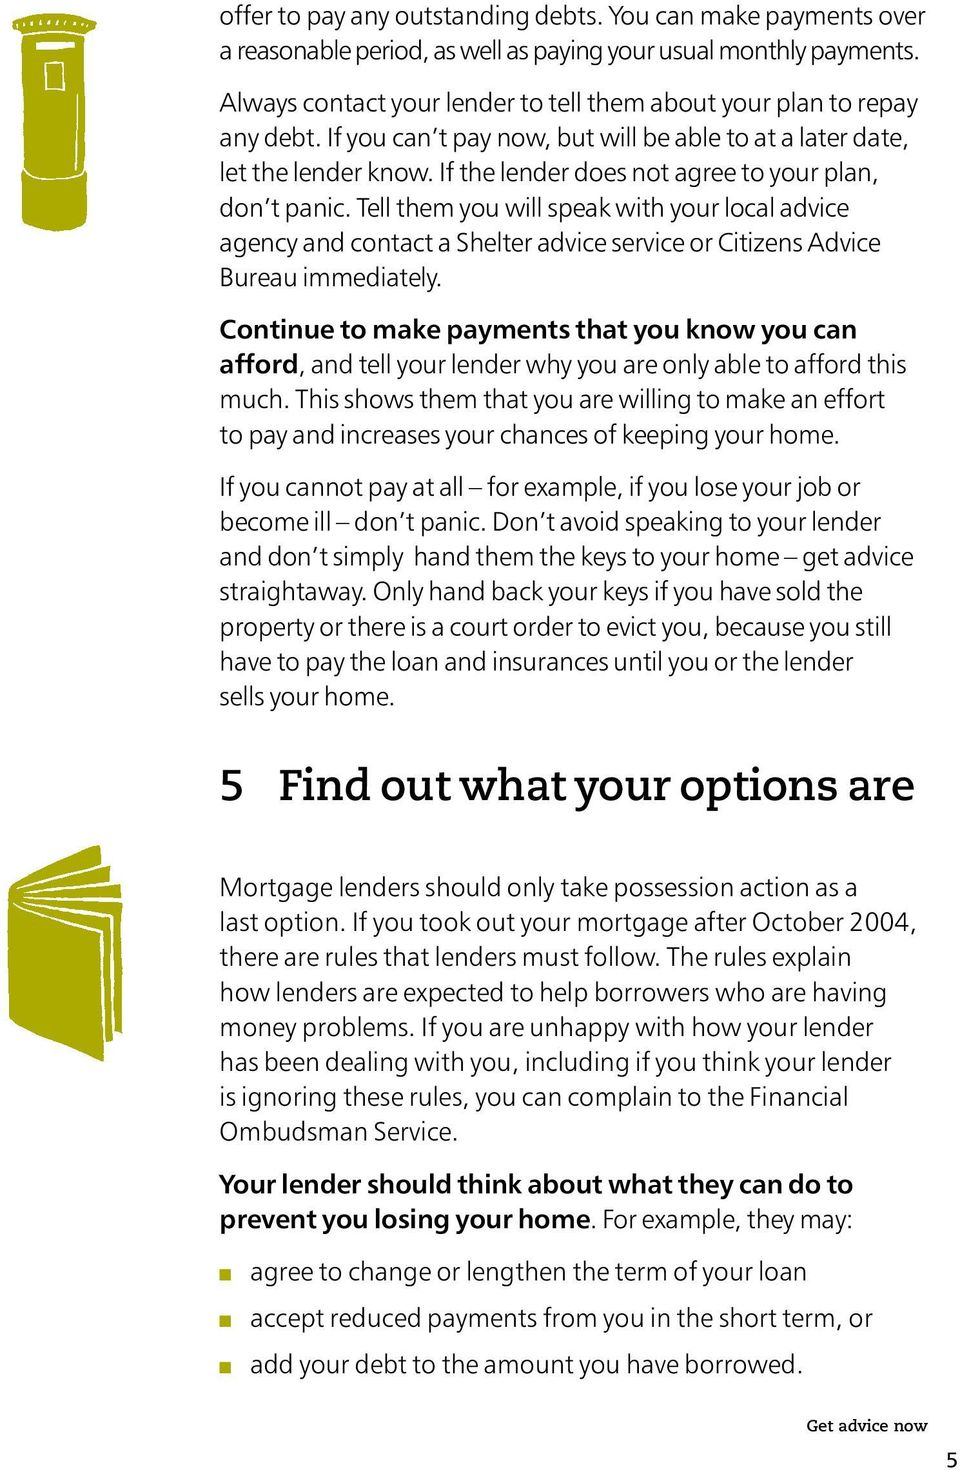 If the lender does not agree to your plan, don t panic. Tell them you will speak with your local advice agency and contact a Shelter advice service or Citizens Advice Bureau immediately.